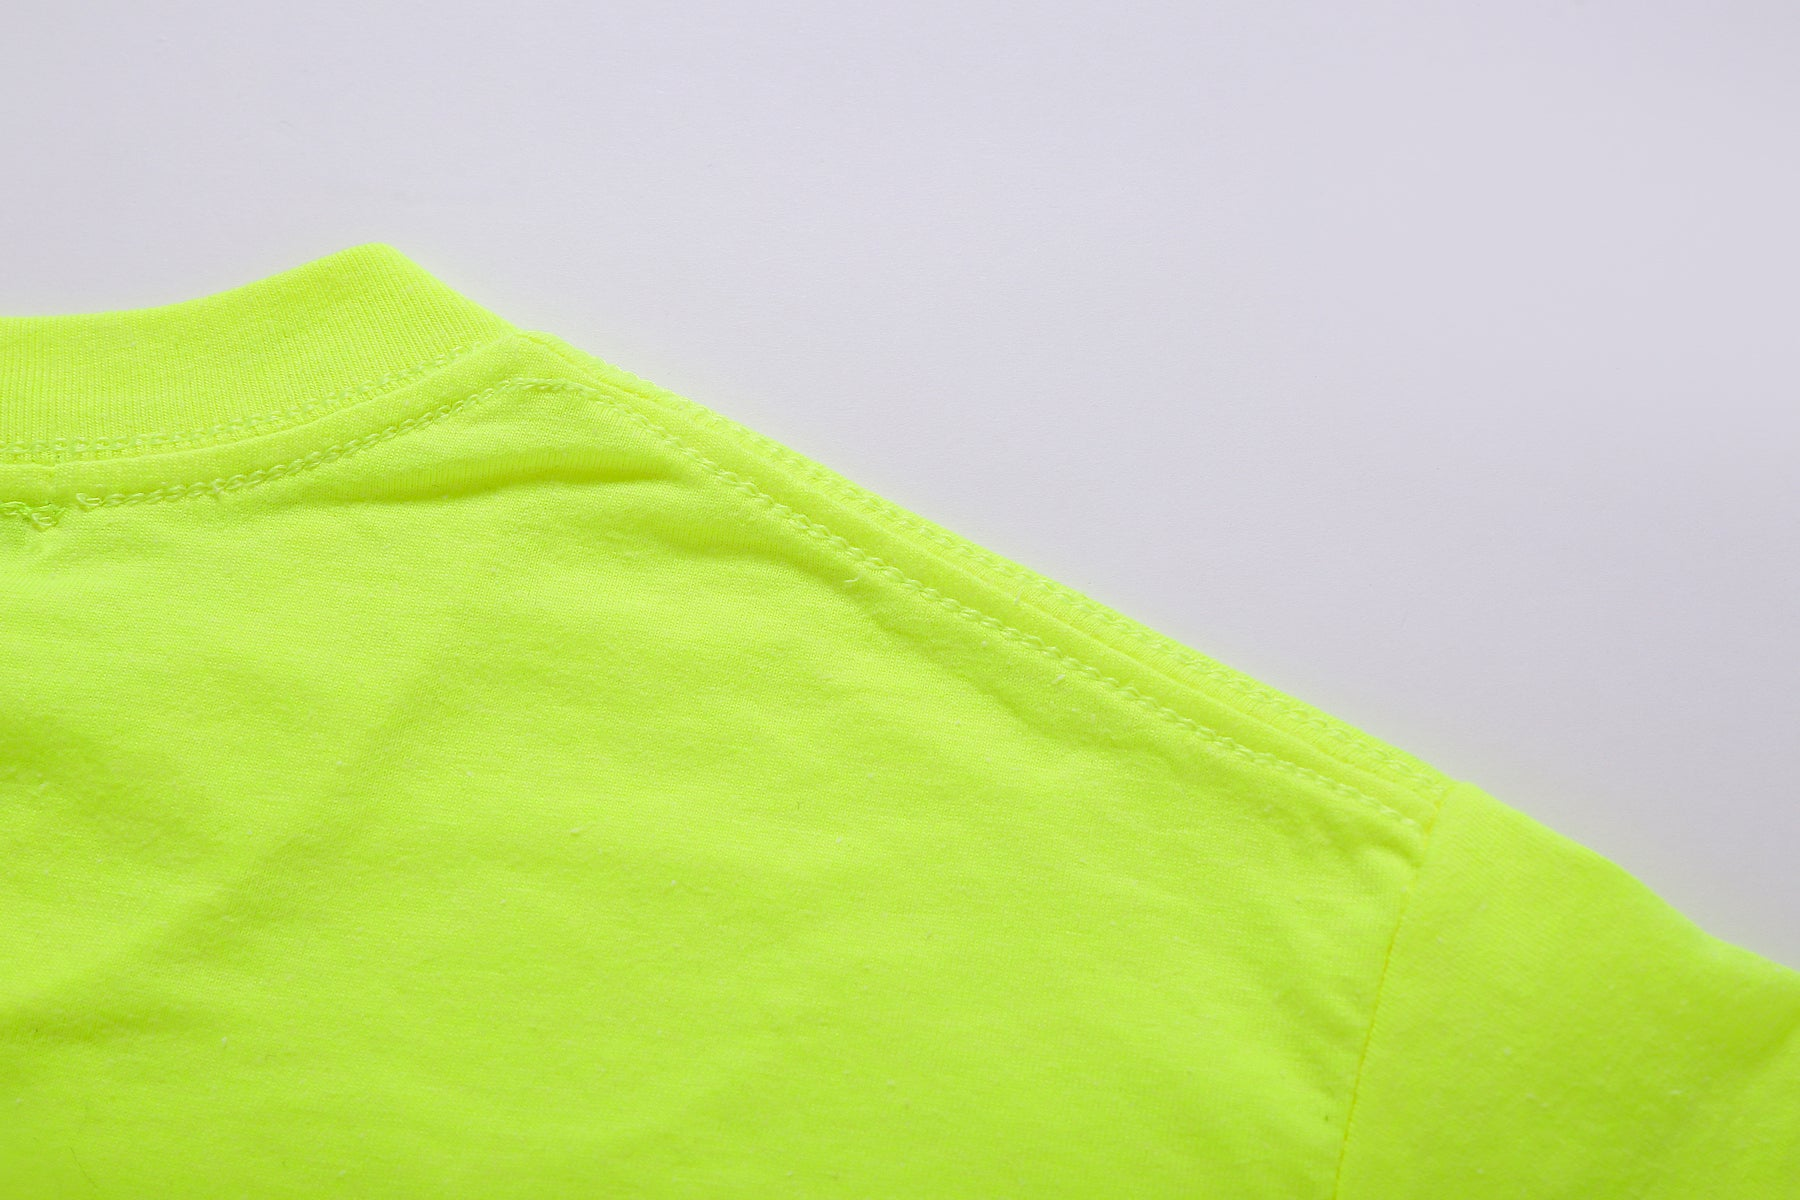 Original No Phone Allowed T-shirt In Neon Yellow